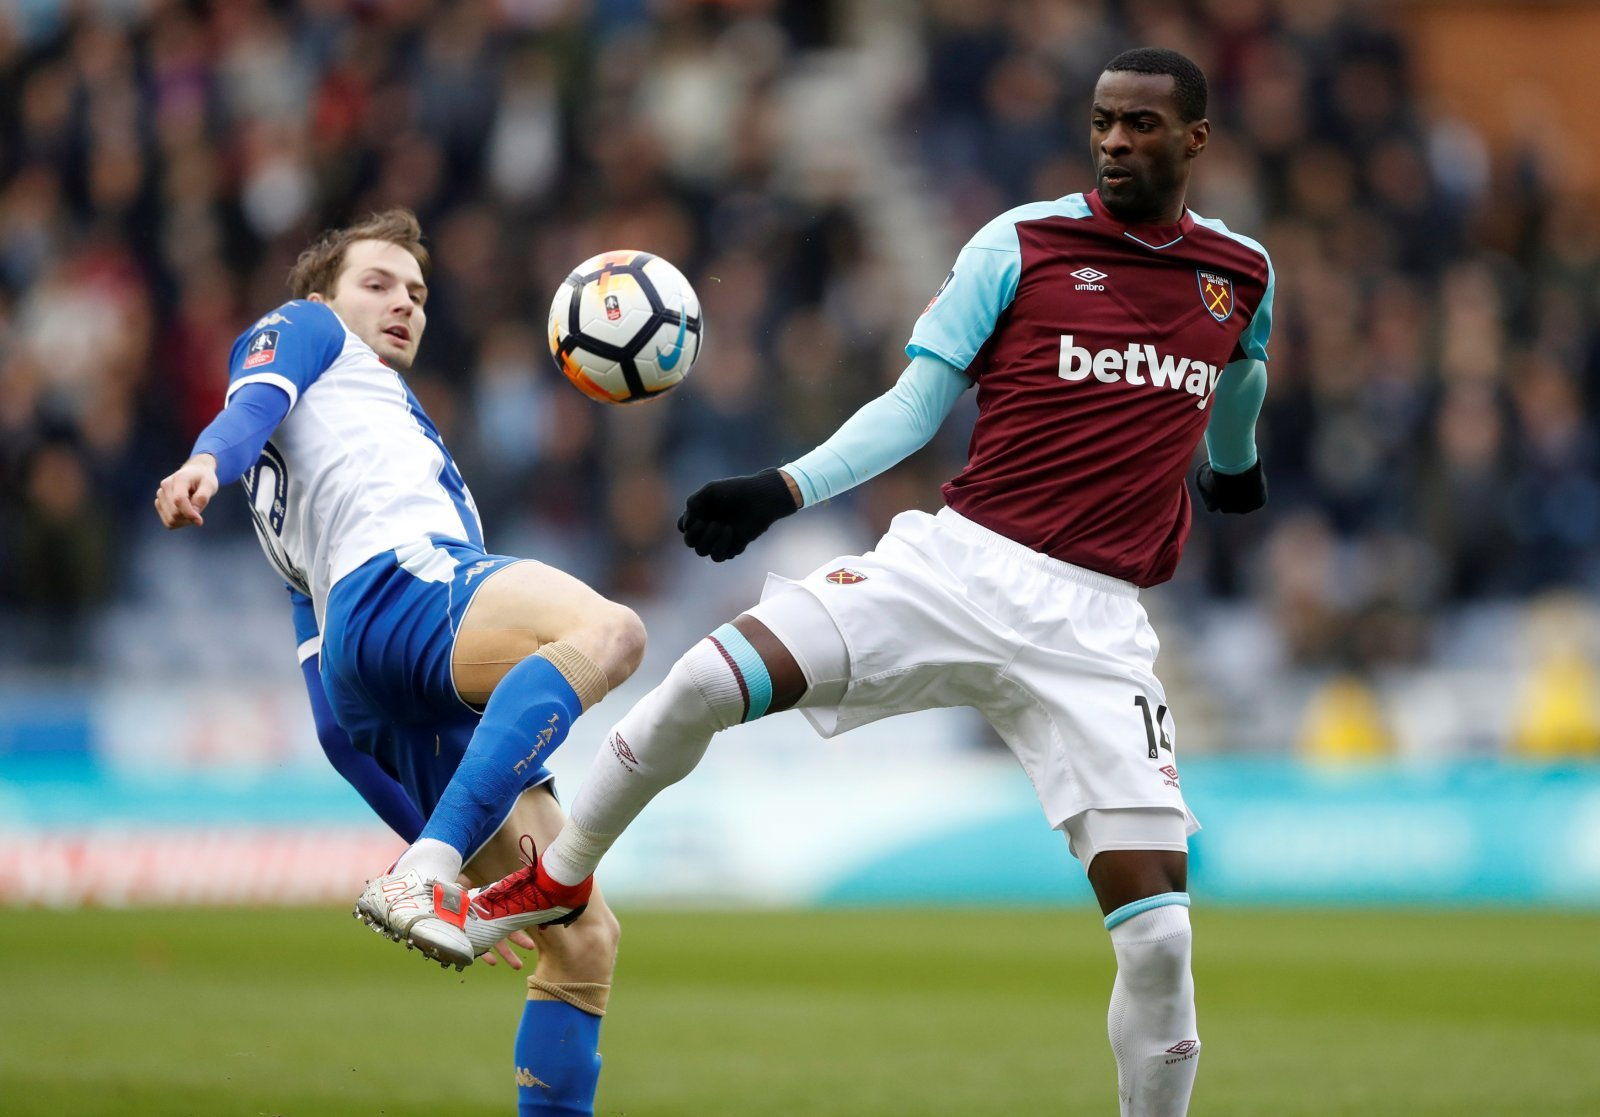 Decision on Pedro Obiang is only going to benefit Hammers